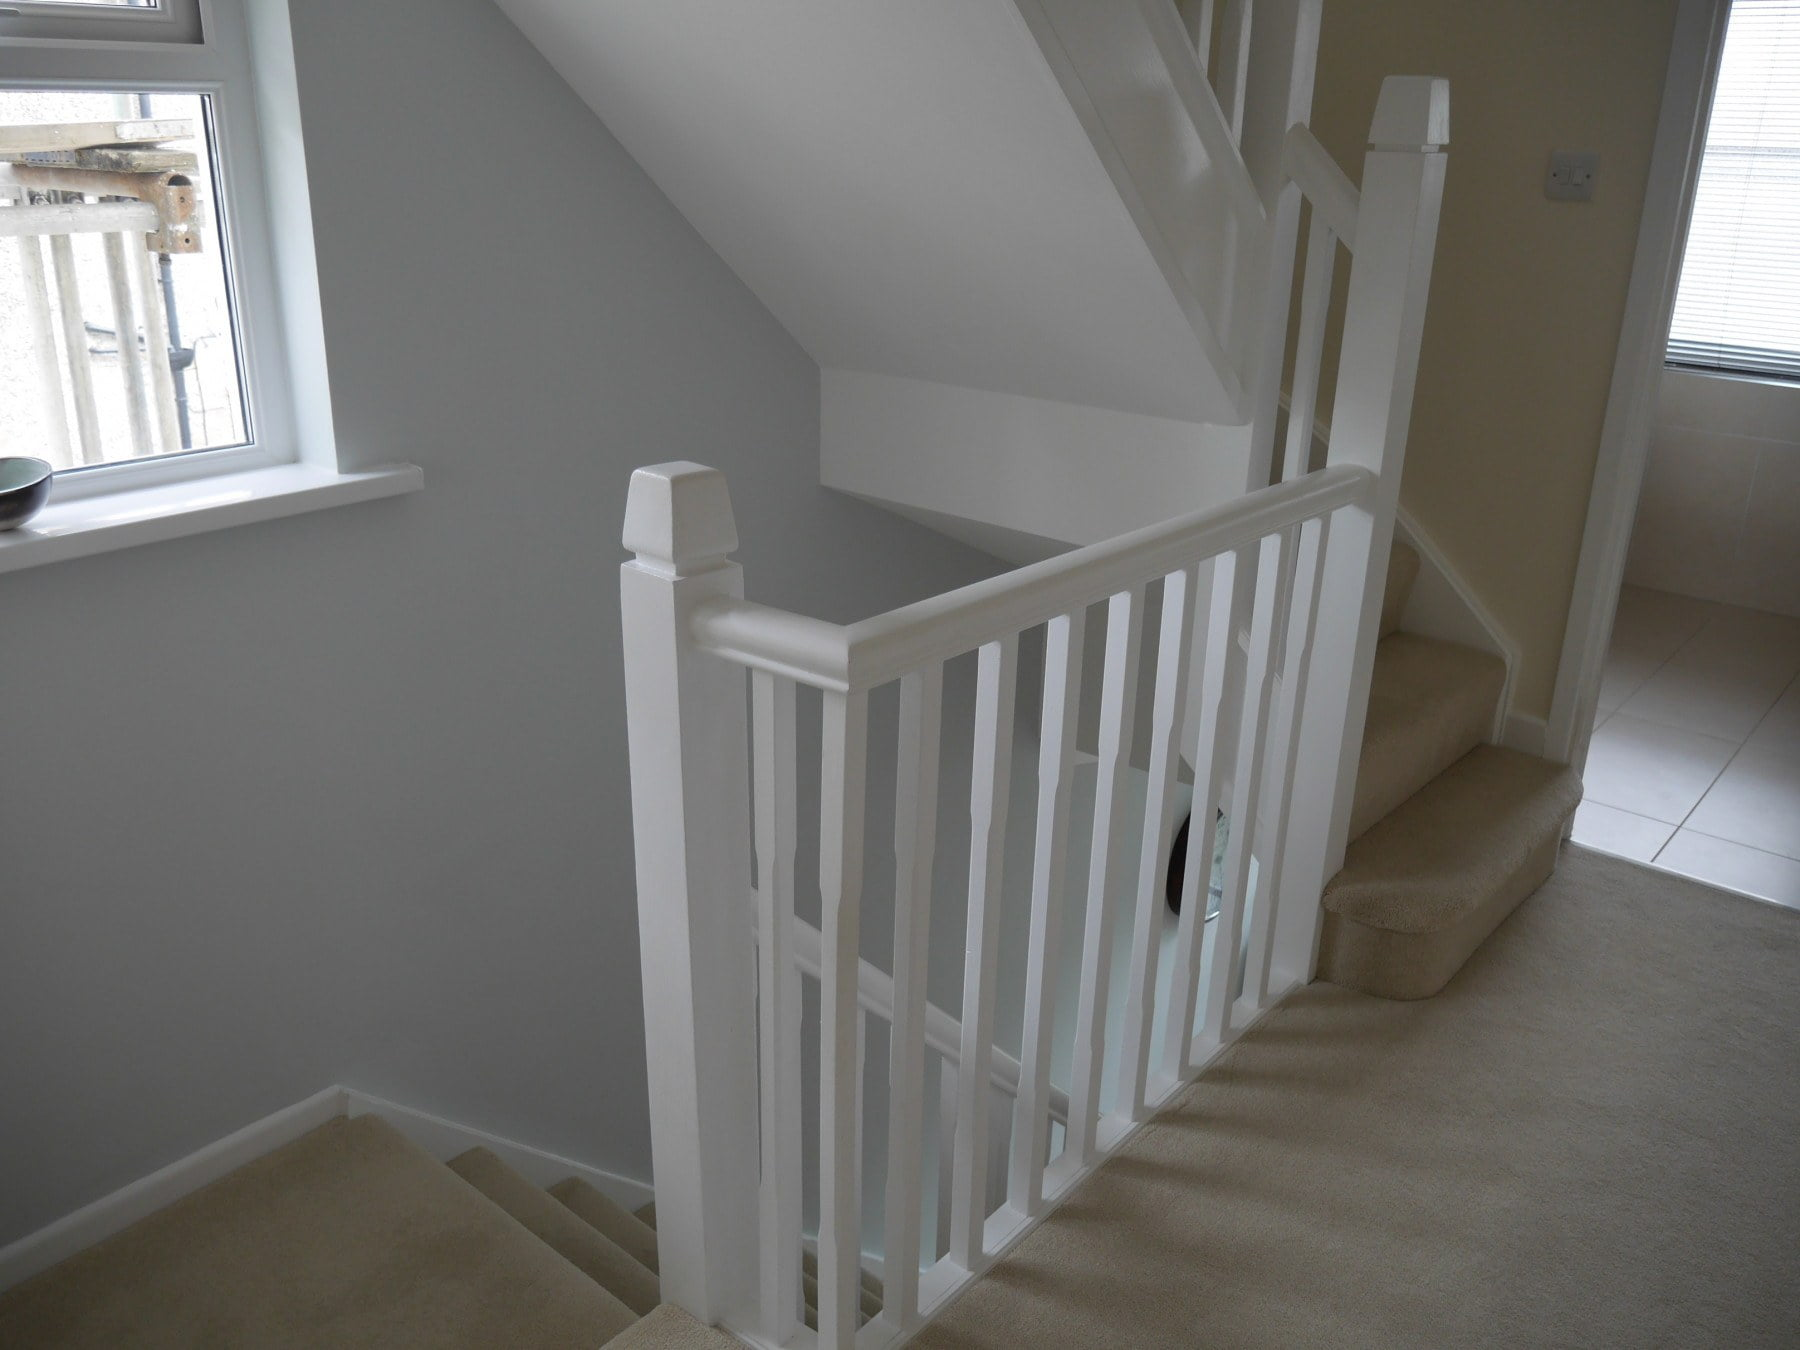 New staircase over existing